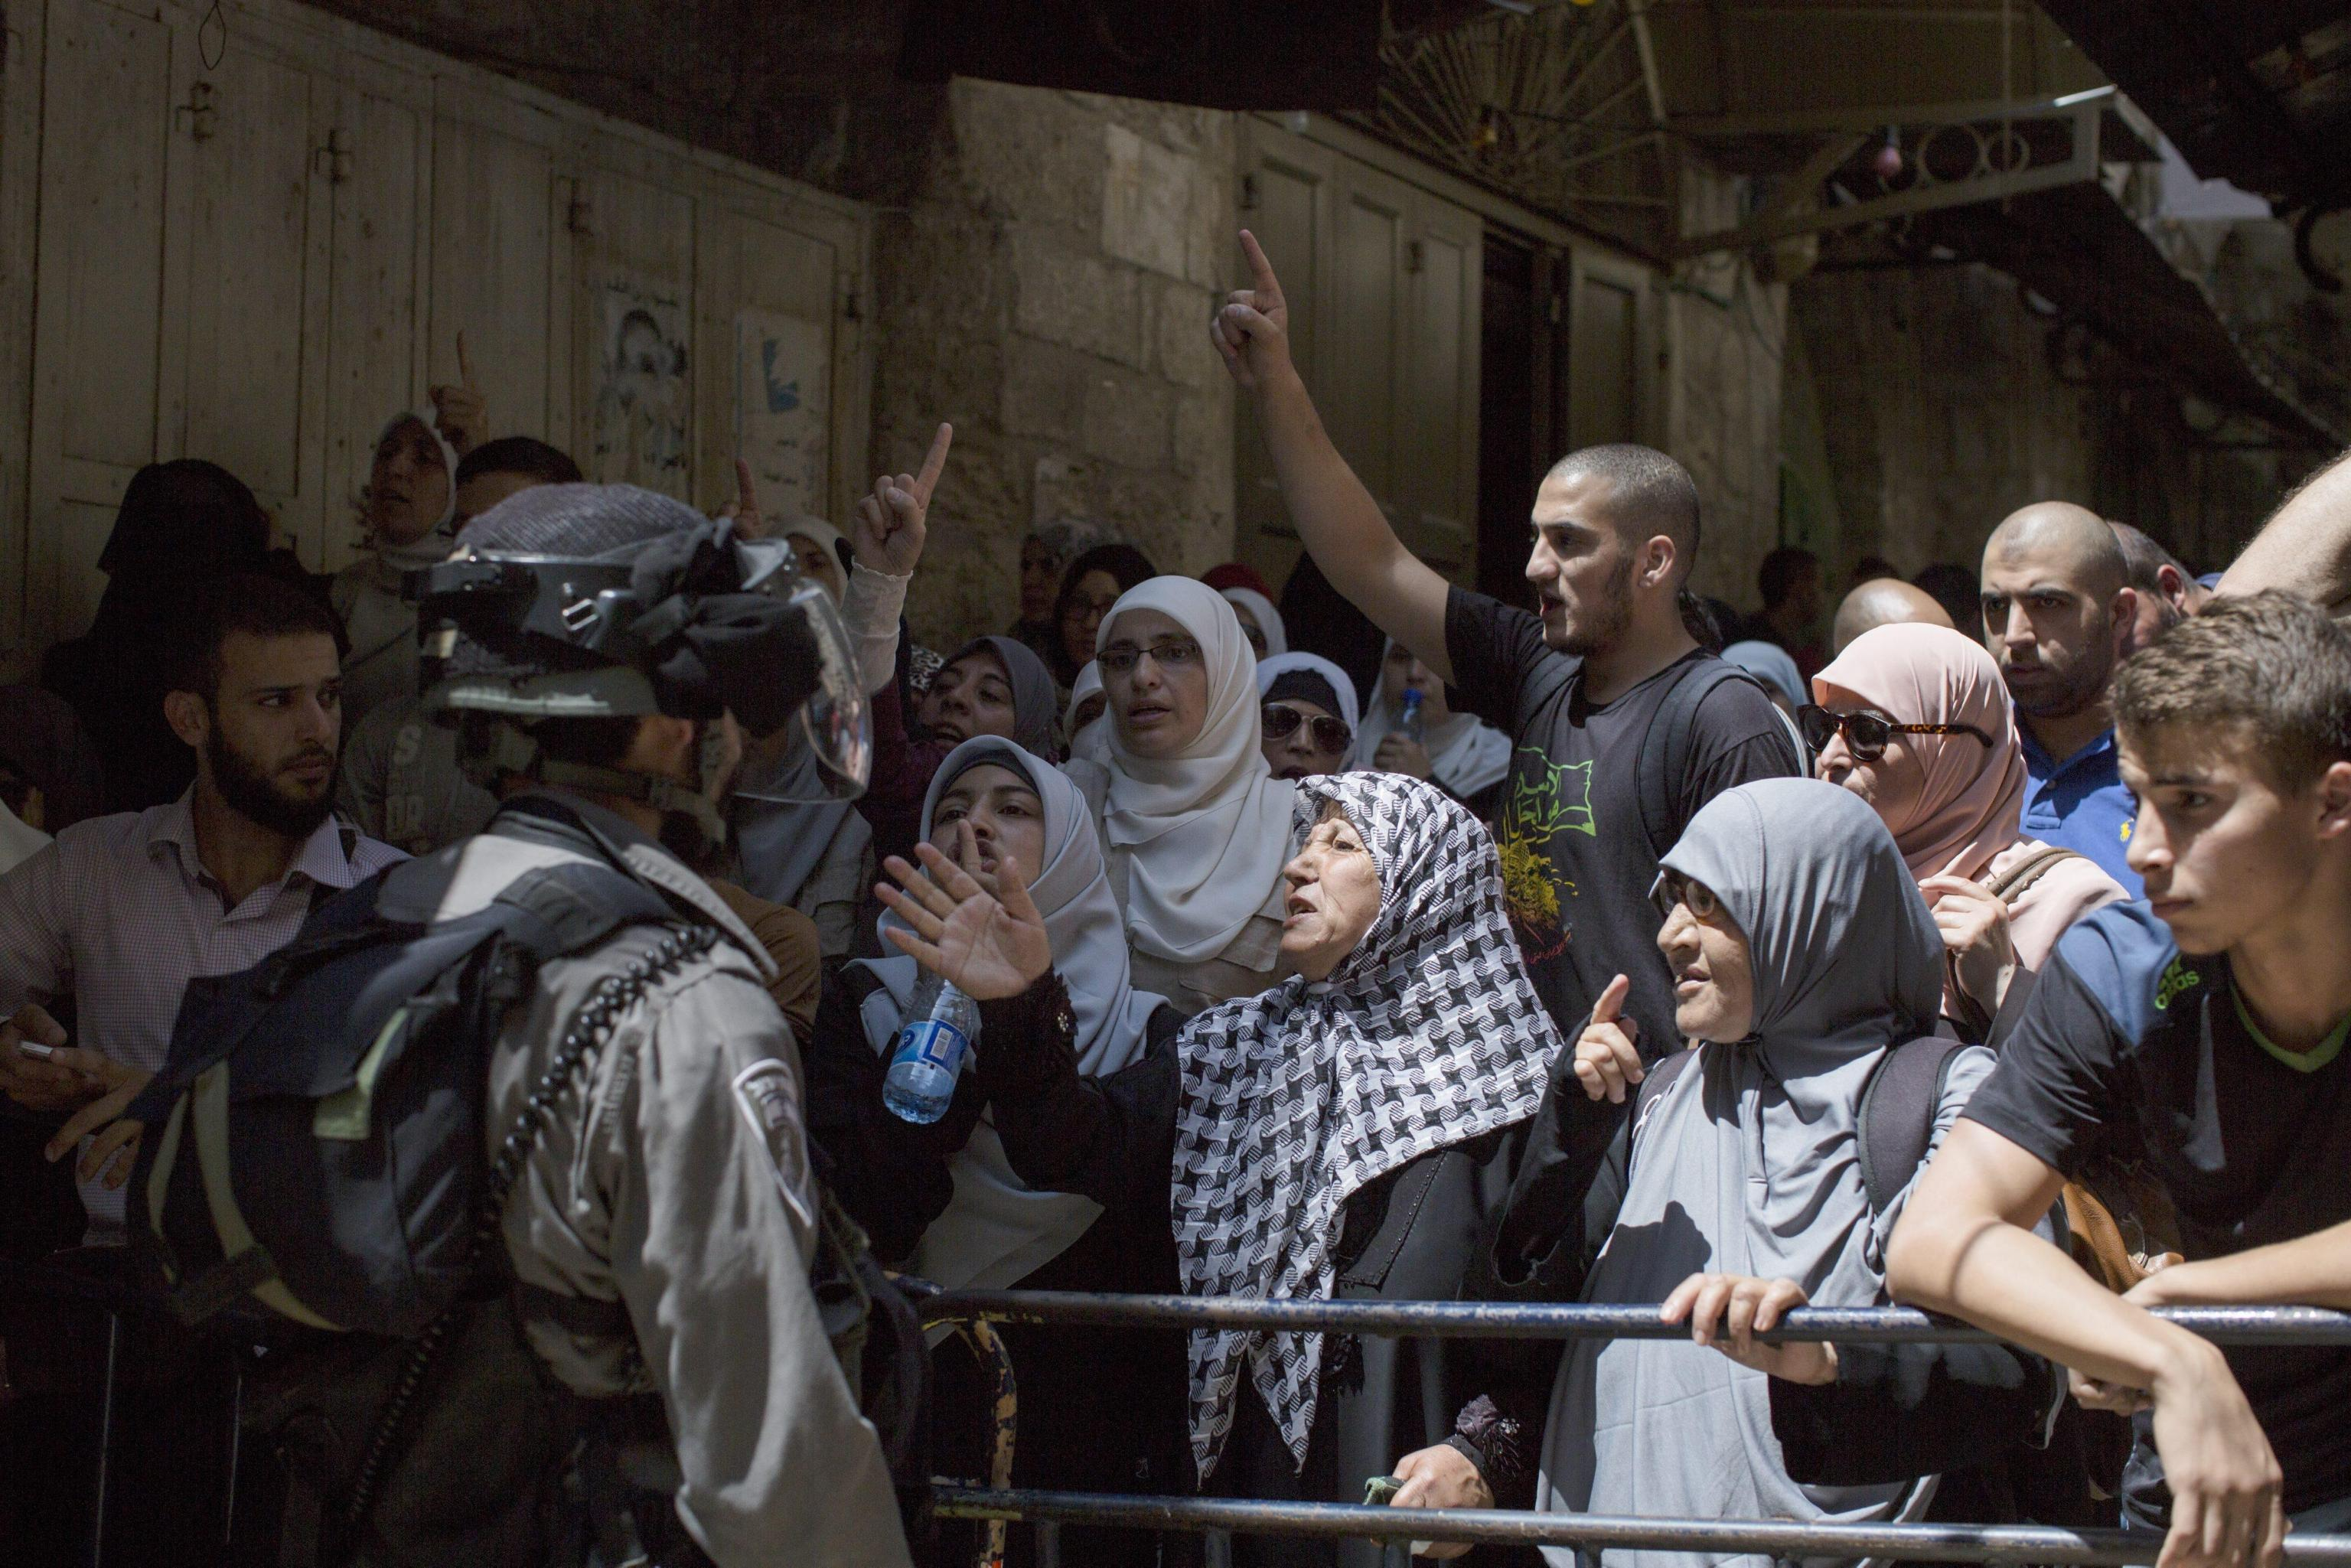 Israeli border police block Palestinians from entering into the Al-Aqsa mosque compound in the Old city of Jerusalem